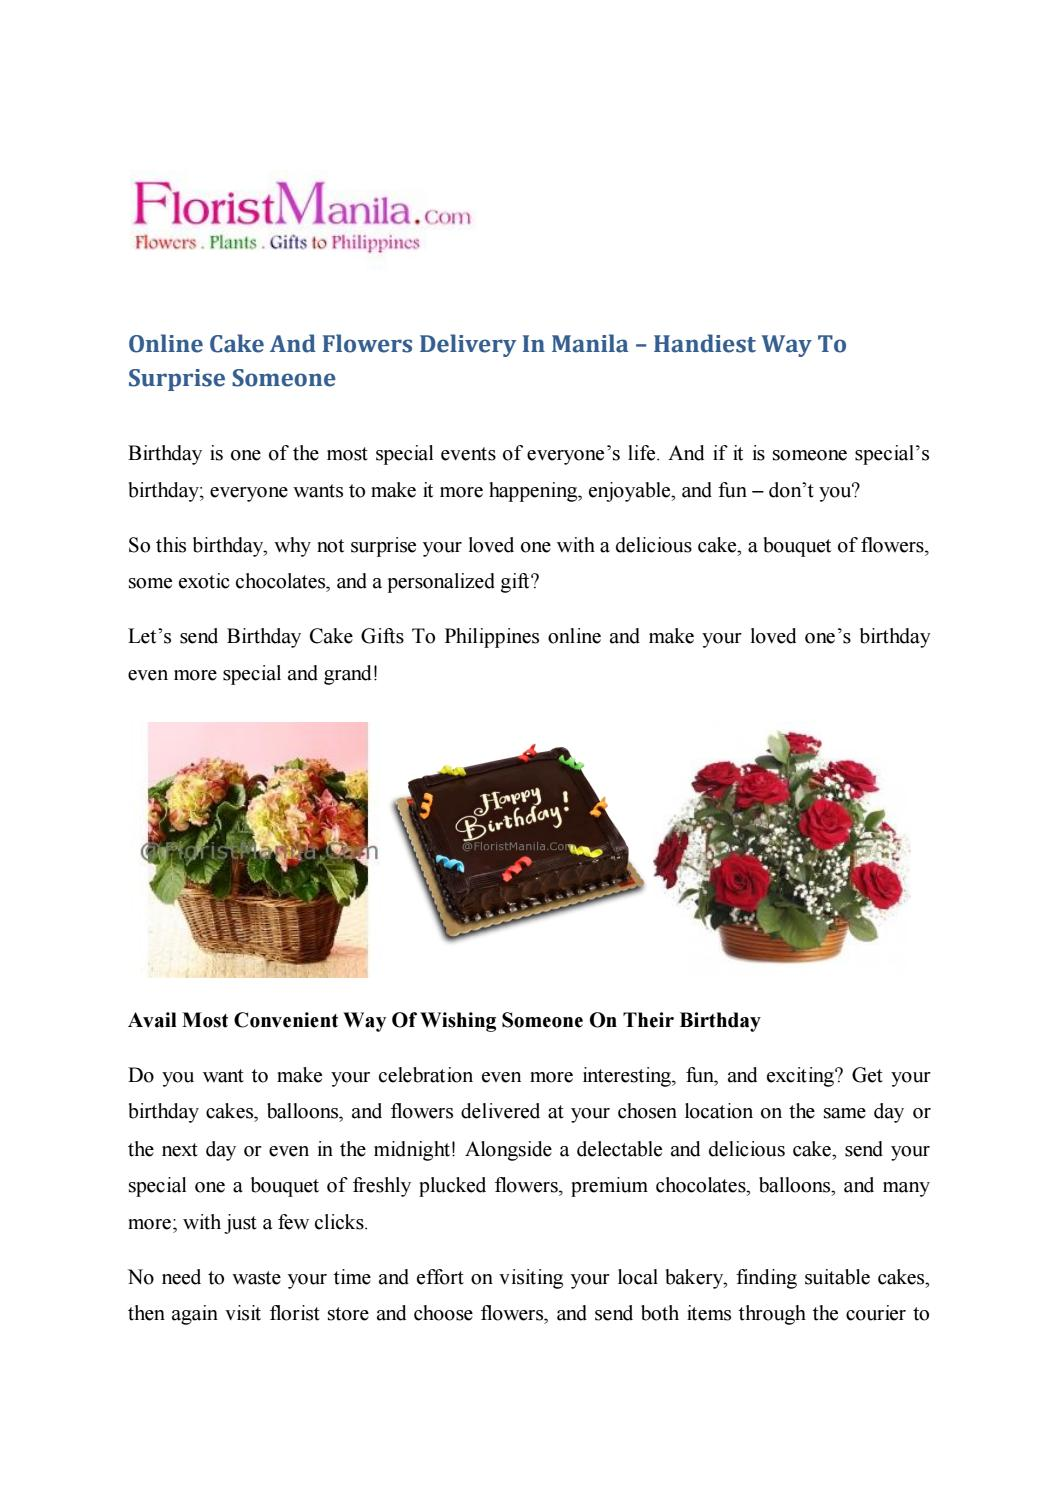 Pleasing Cake And Flowers Delivery In Manila By Floristmanilaseo Issuu Personalised Birthday Cards Veneteletsinfo